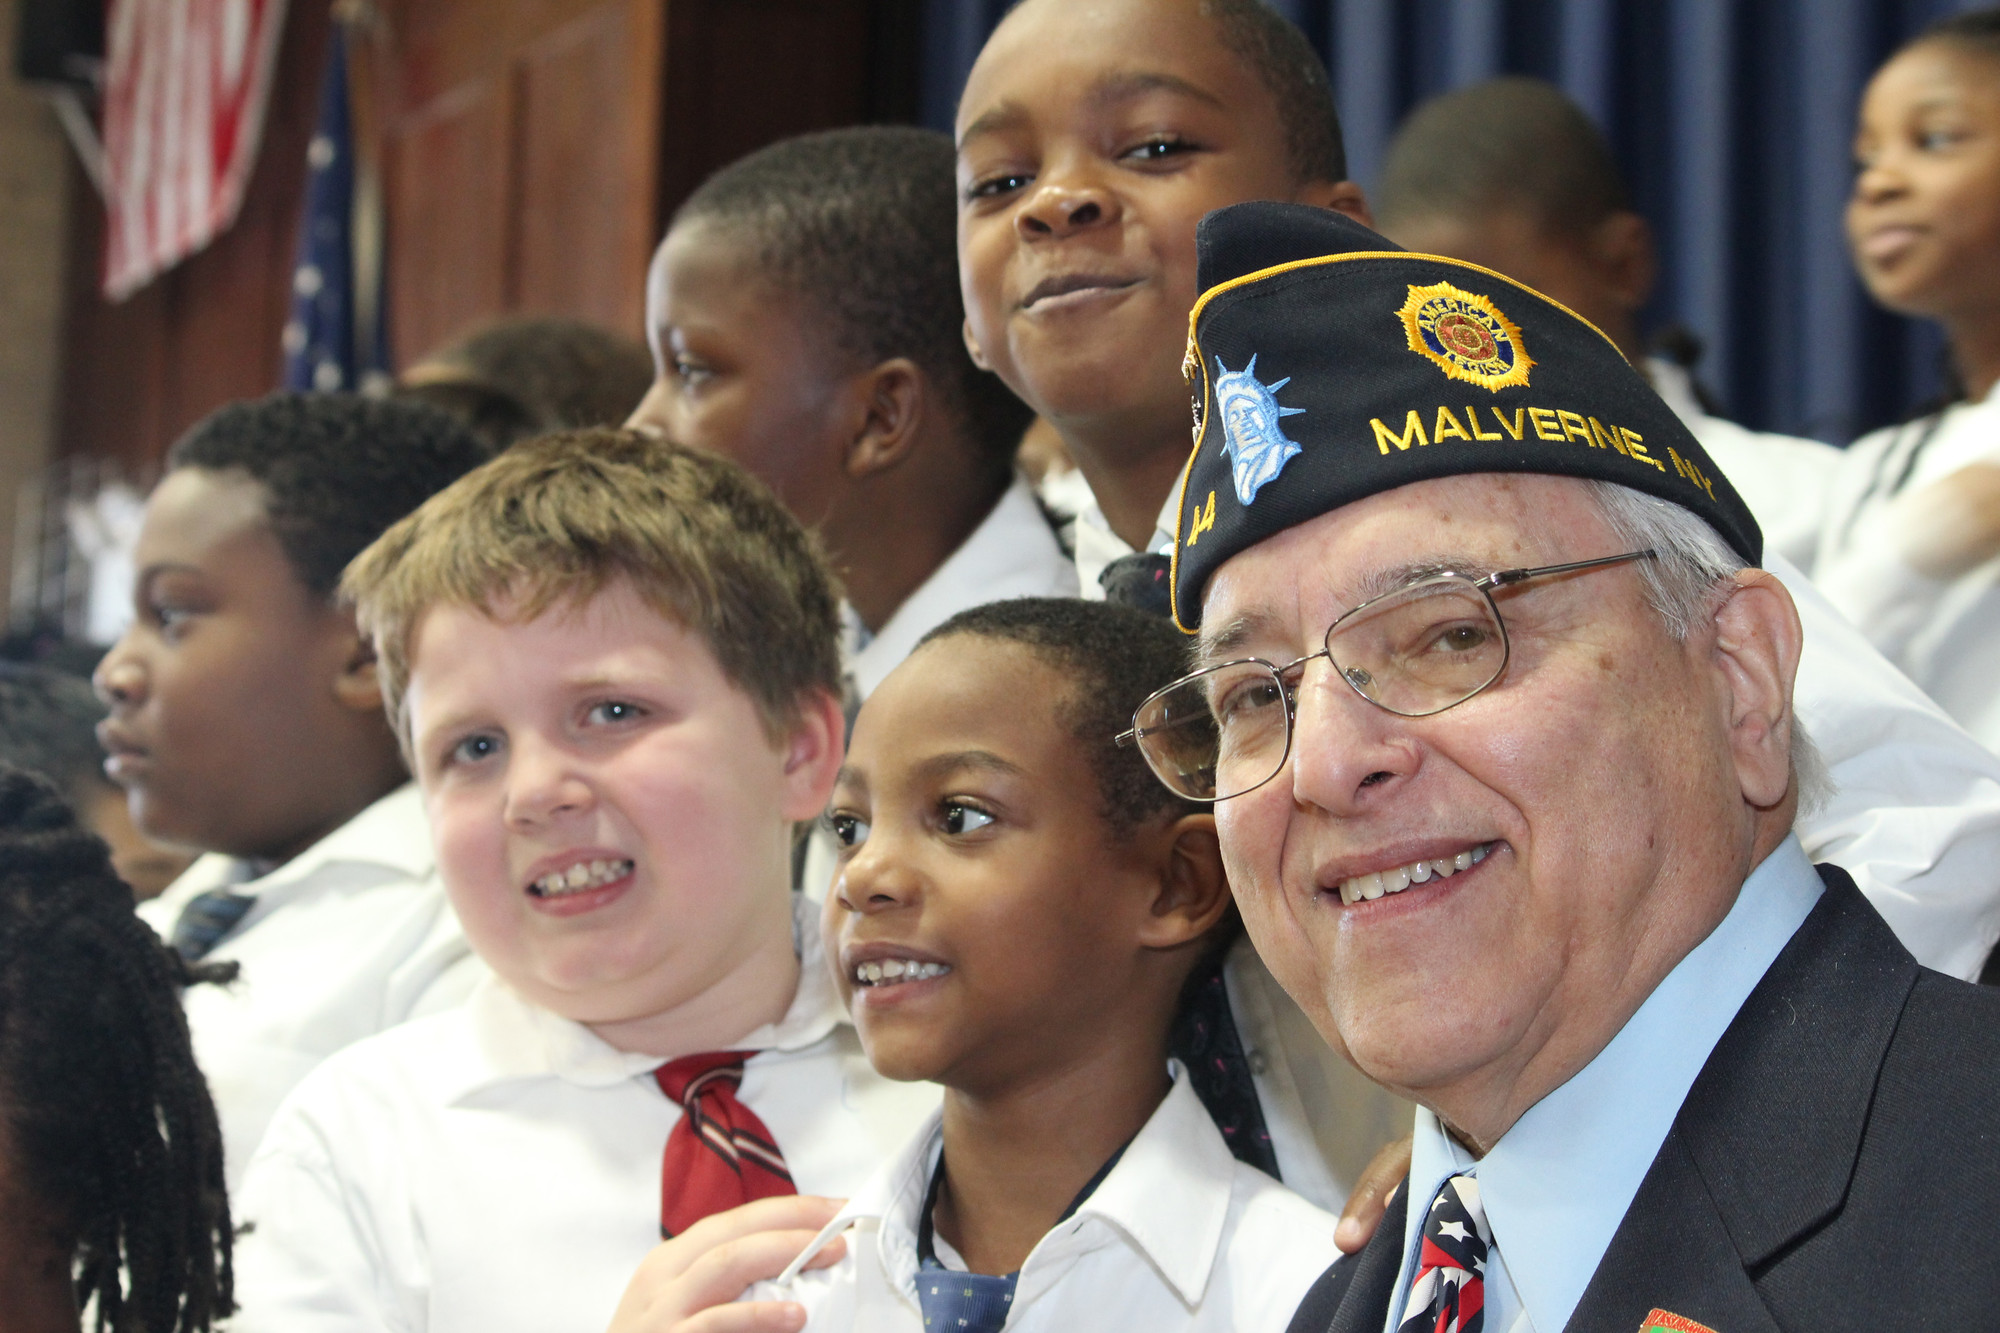 Peter Zullo, an Army veteran of the Vietnam War and Past Commander of Malverne American Legion Post 44, enjoyed listening to the songs performed by third graders Nick Canny, left, and Jordan Smith, center.